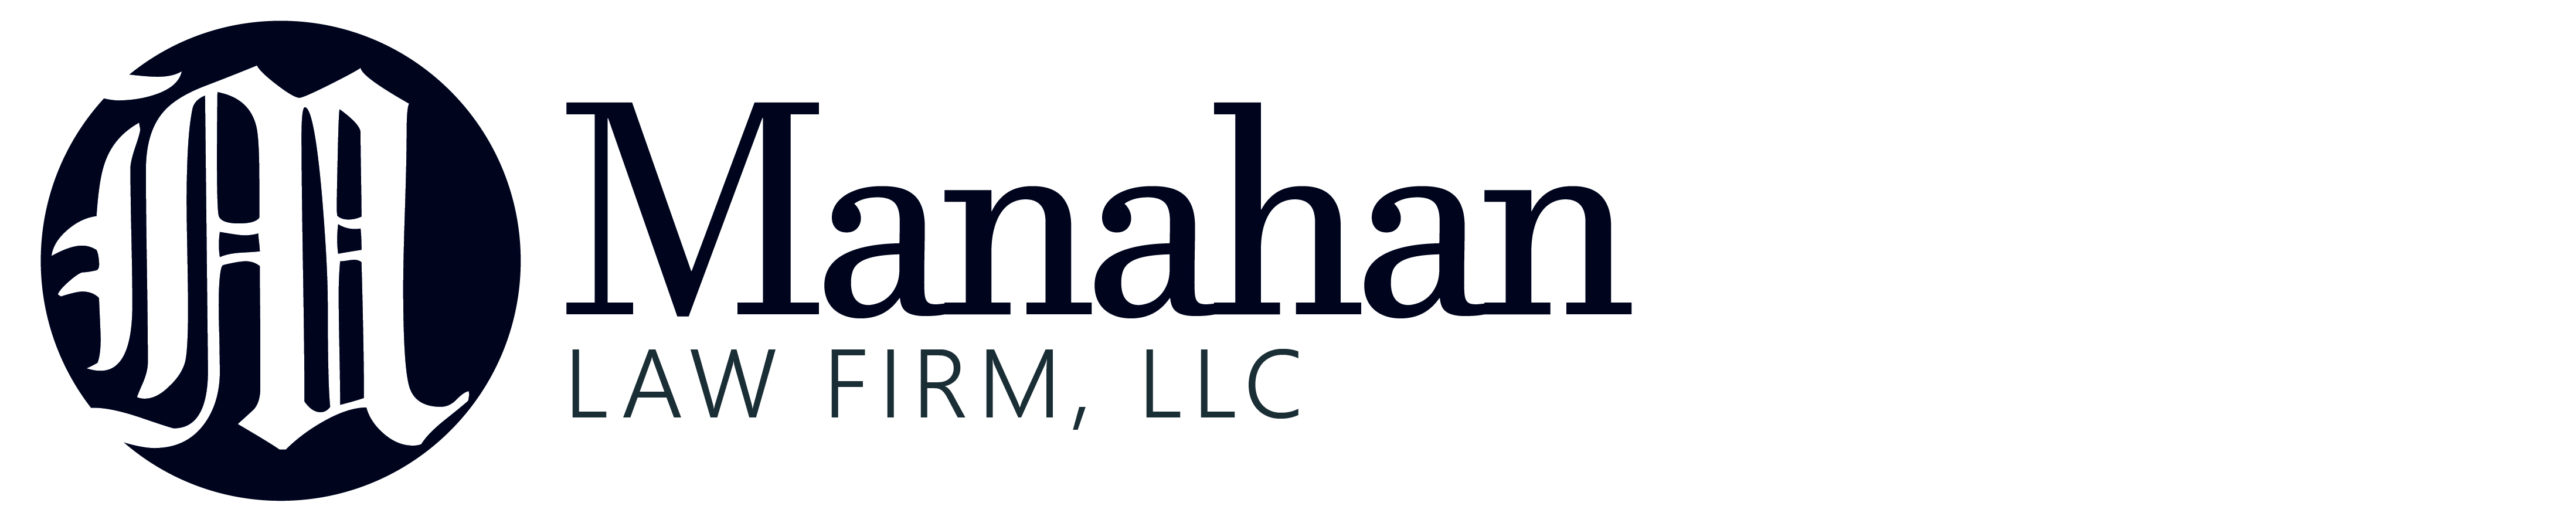 Manahan Law Firm Horizontal logo created and designed by JA Creative Group